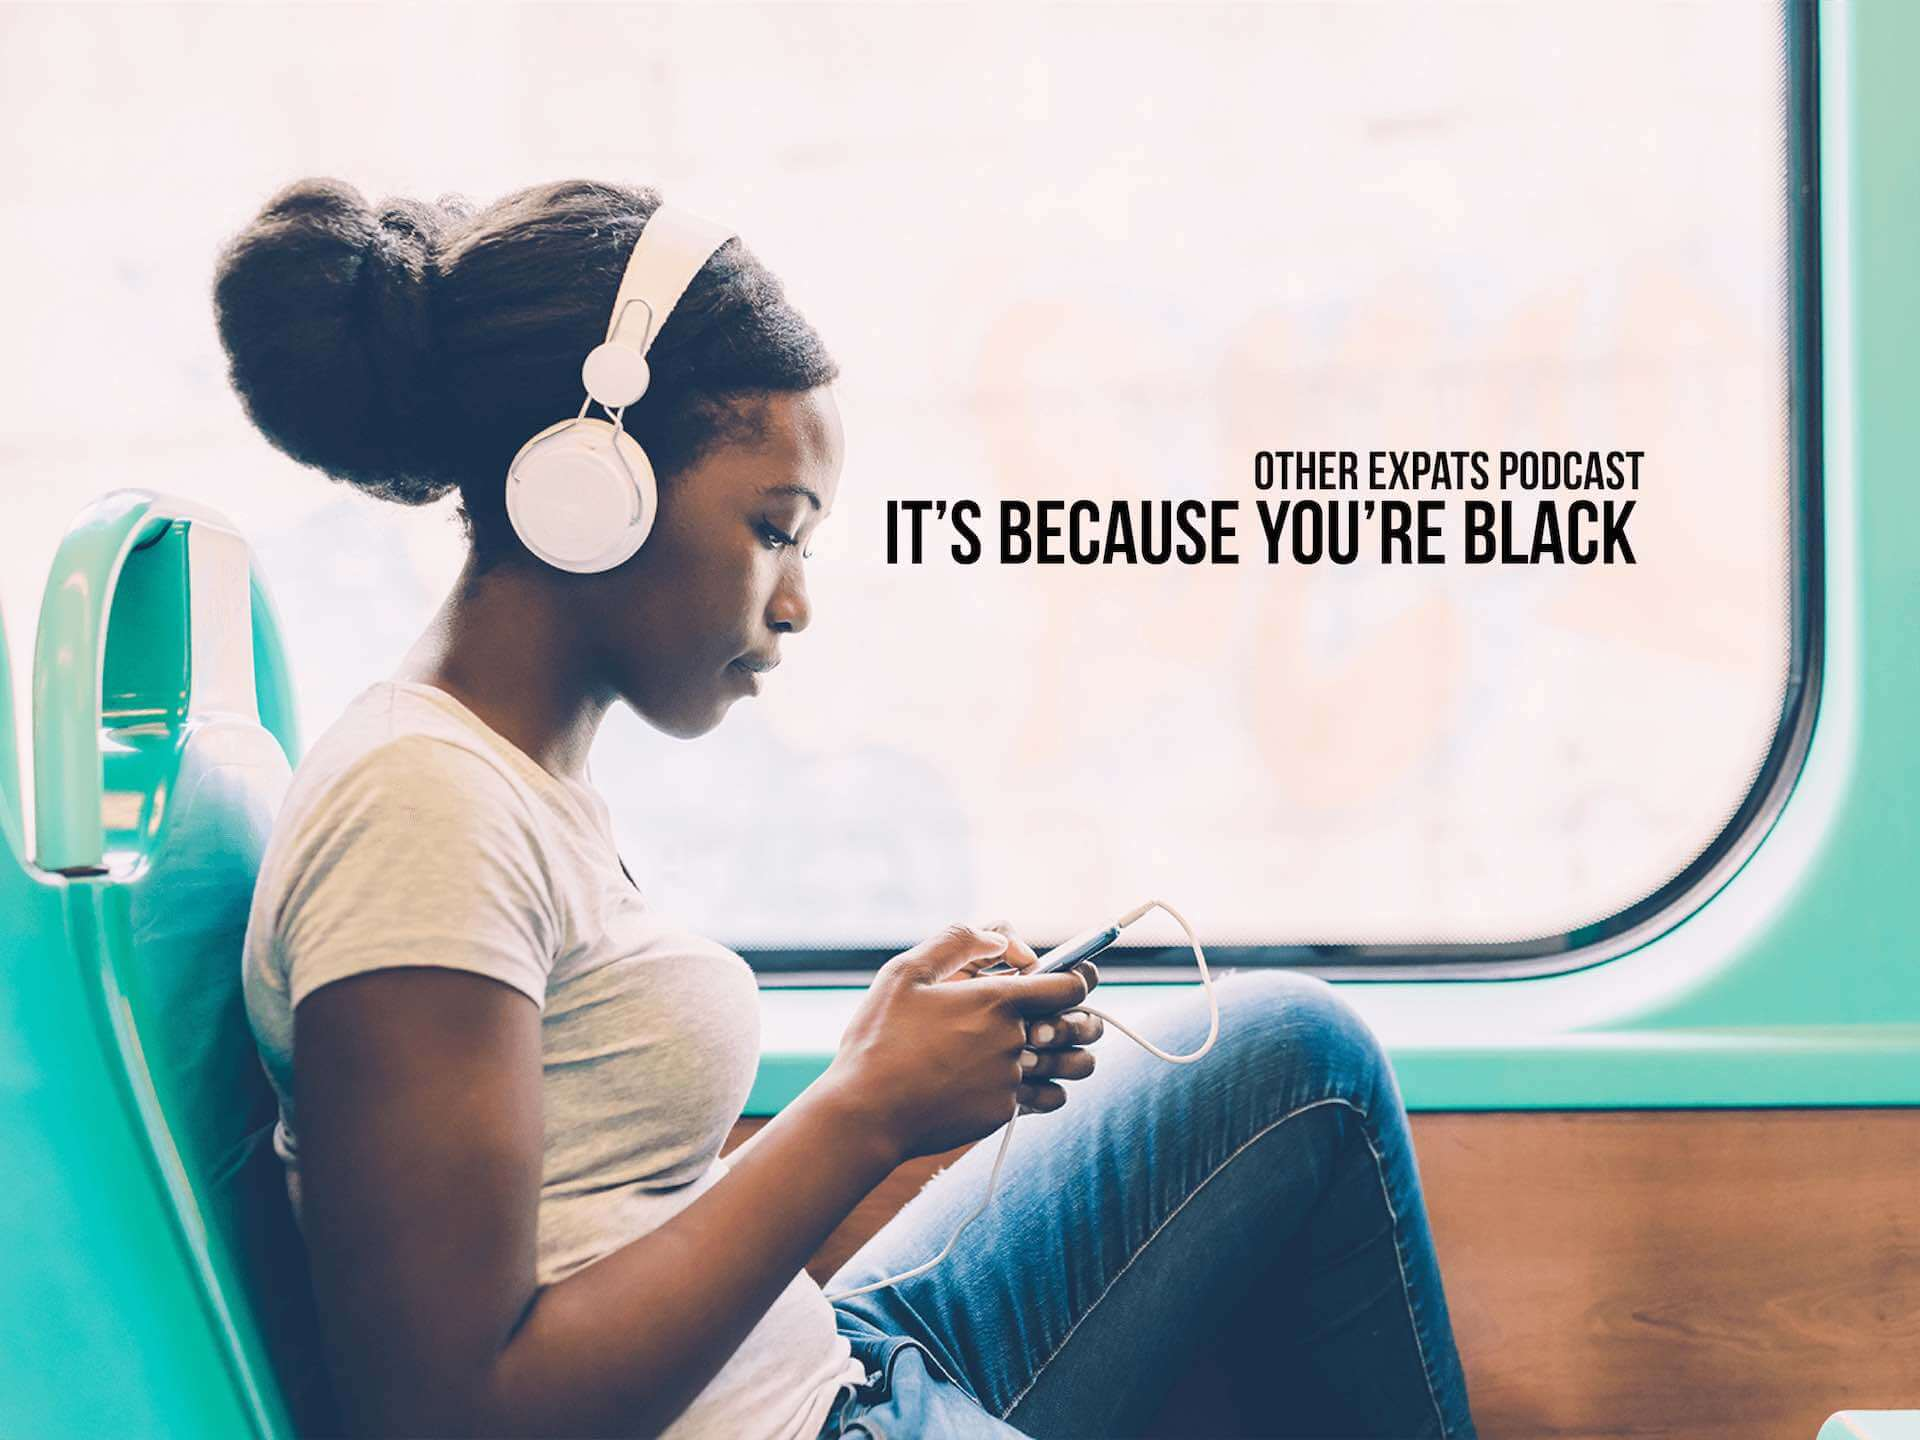 It's because you're black